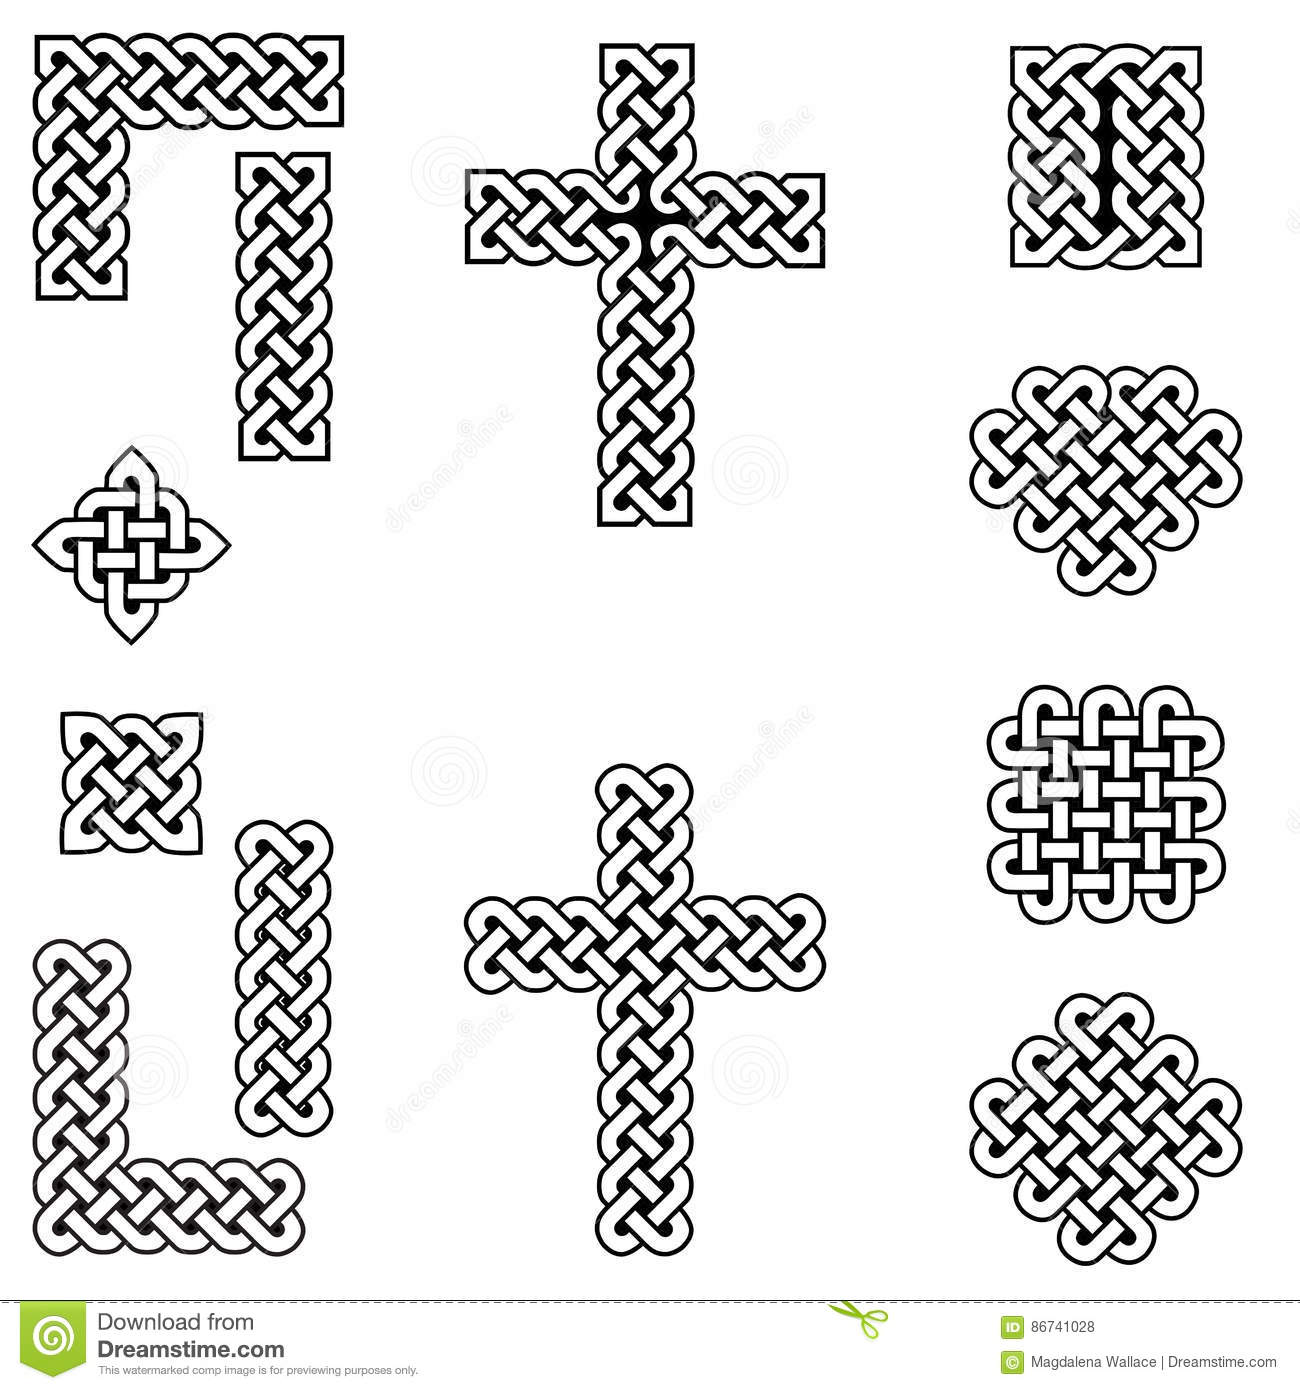 Curvy stock illustrations 10104 curvy stock illustrations celtic style endless knot symbols including border line heart cross curvy squares biocorpaavc Gallery